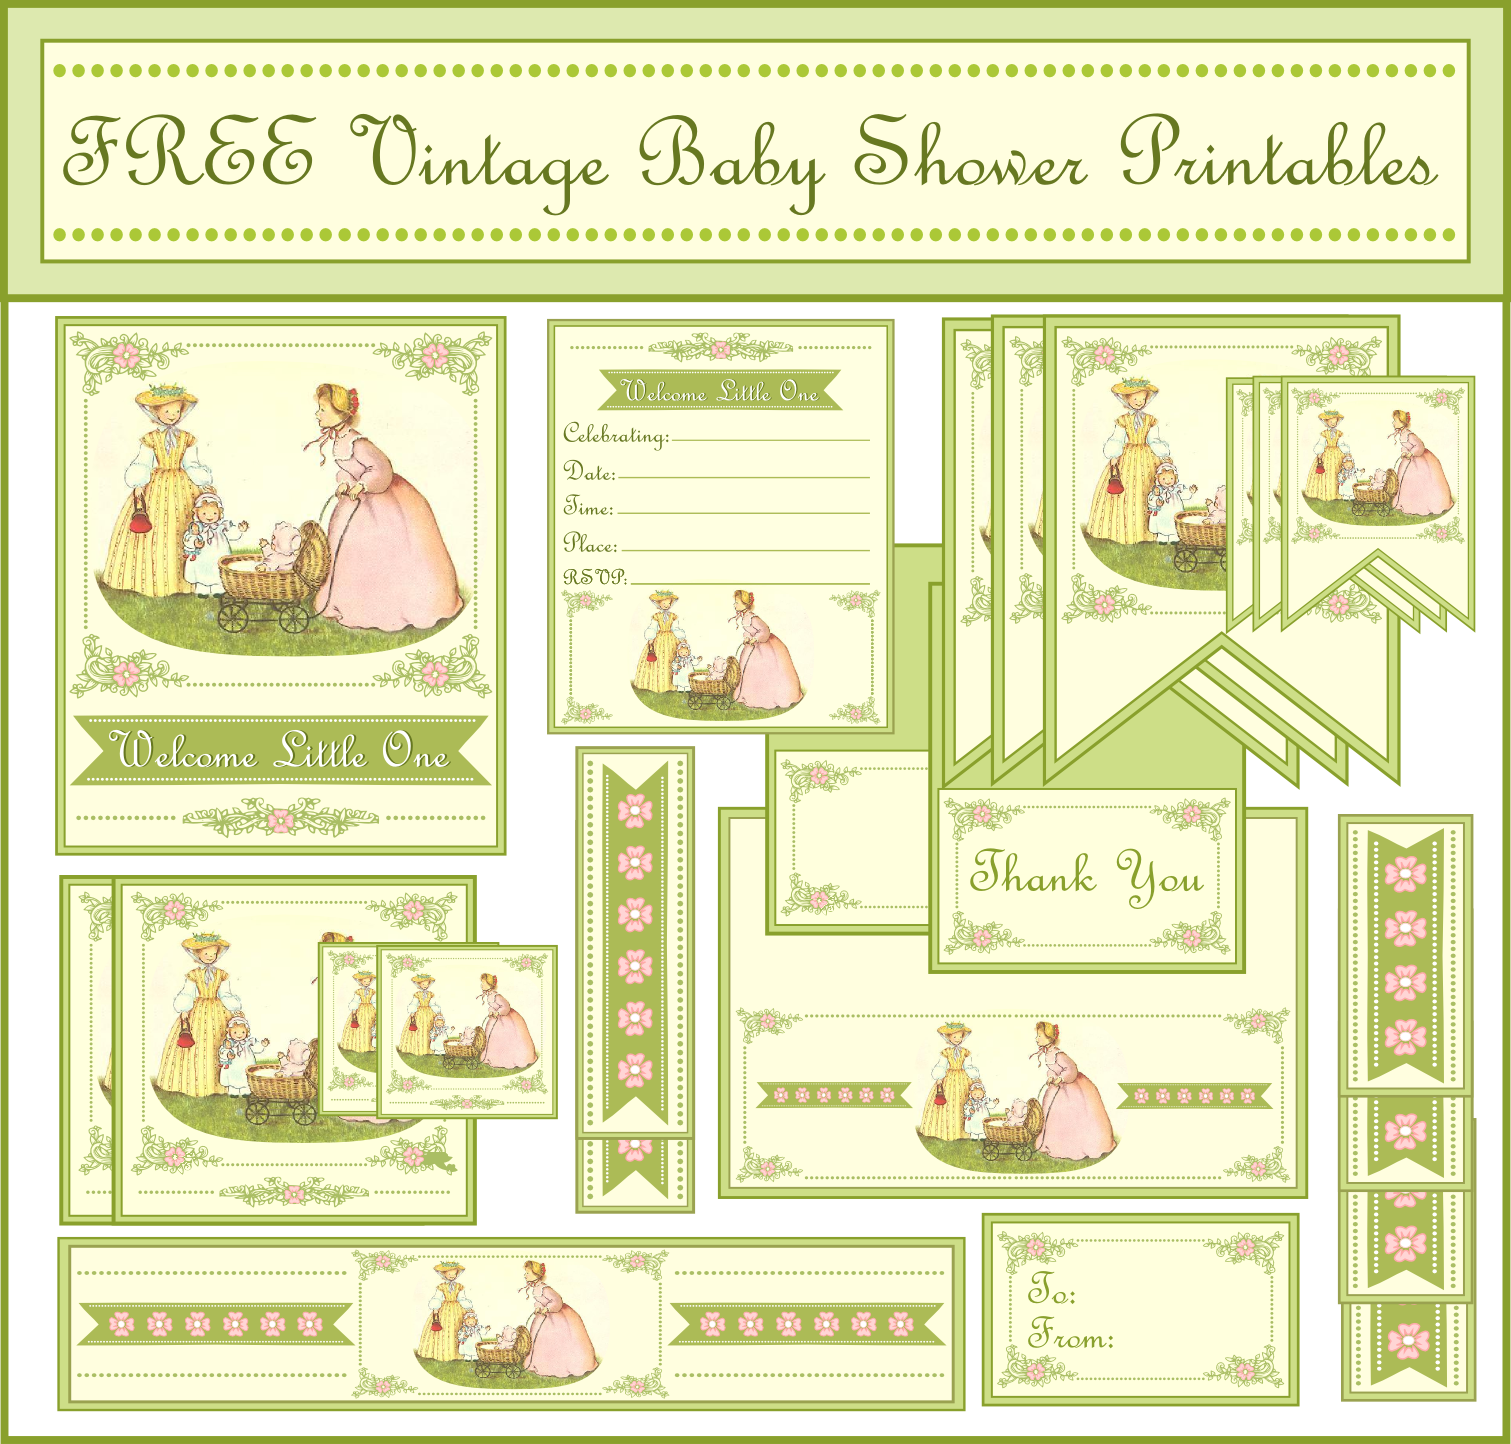 graphic relating to Free Vintage Printable identified as Absolutely free Typical Child Shower Printables versus Printabelle Capture